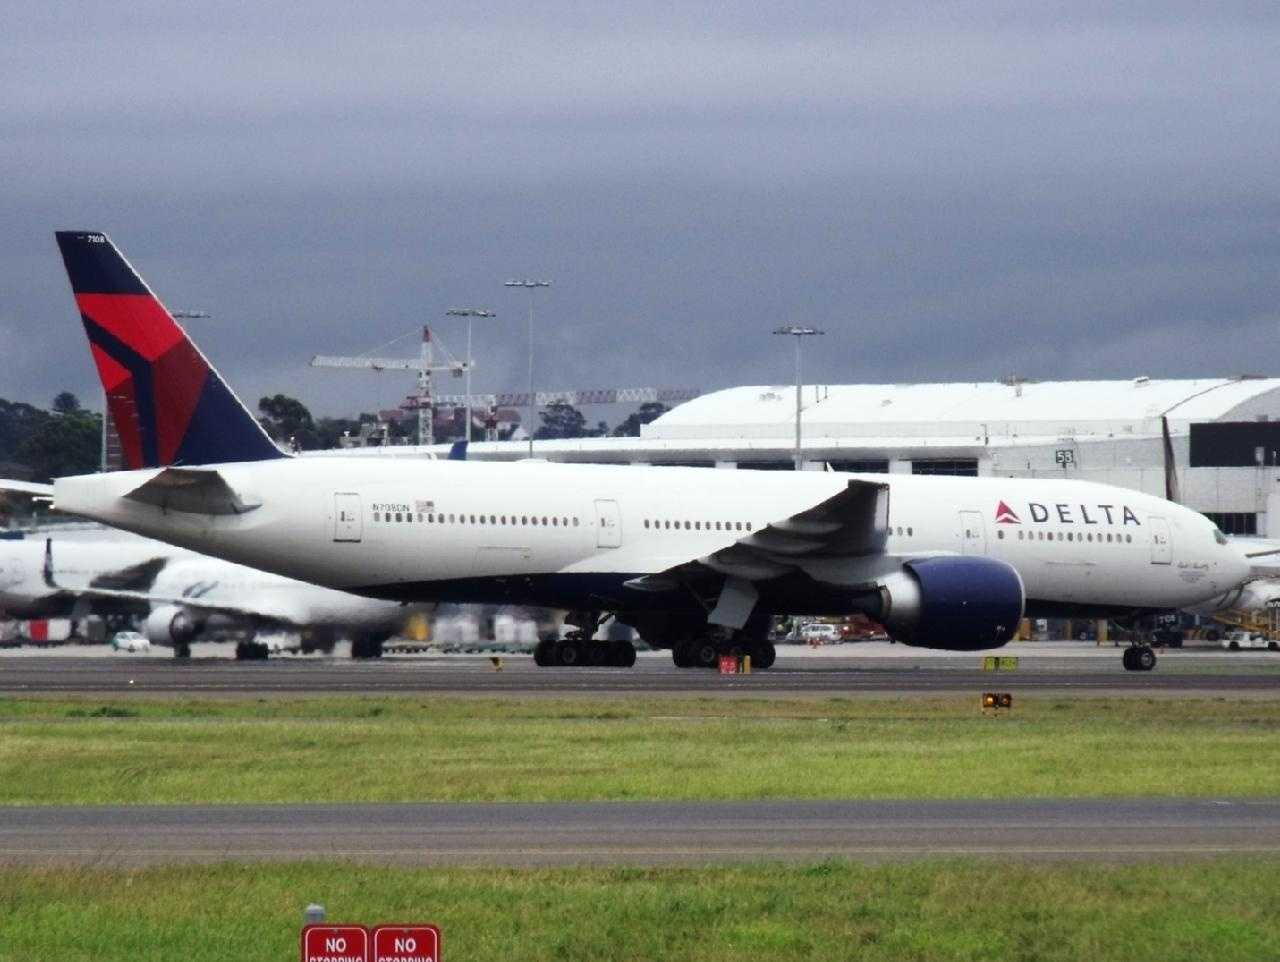 Plane returns to Seattle after assault on flight attendant